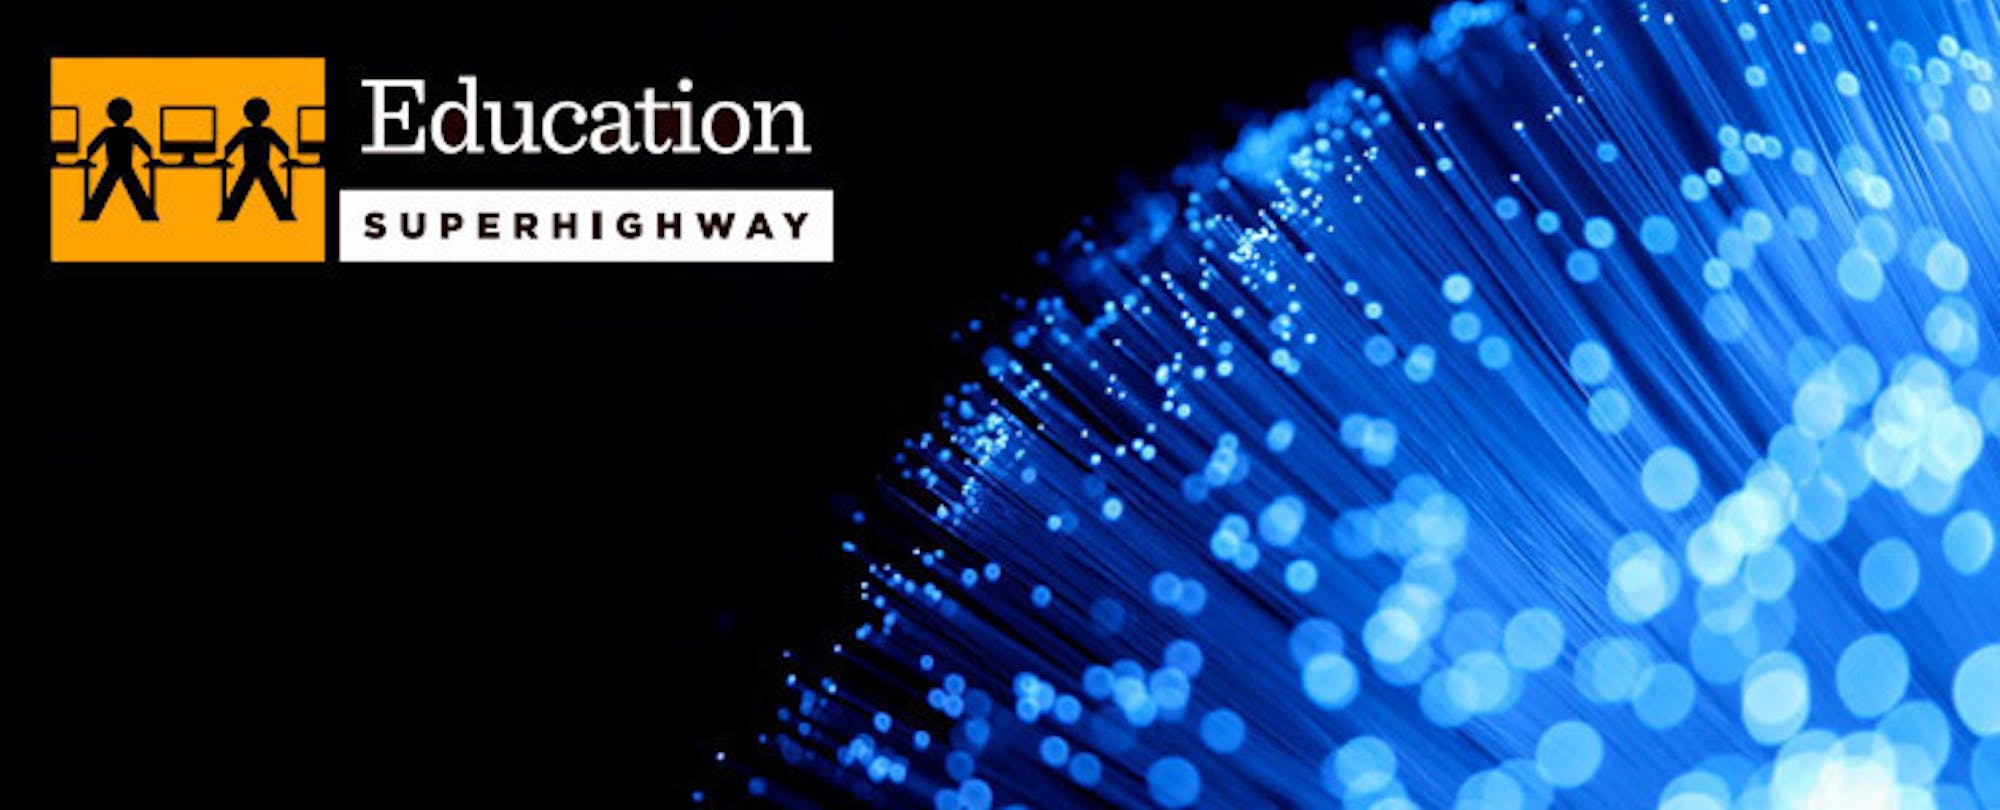 EducationSuperHighway Launches School Speed Test